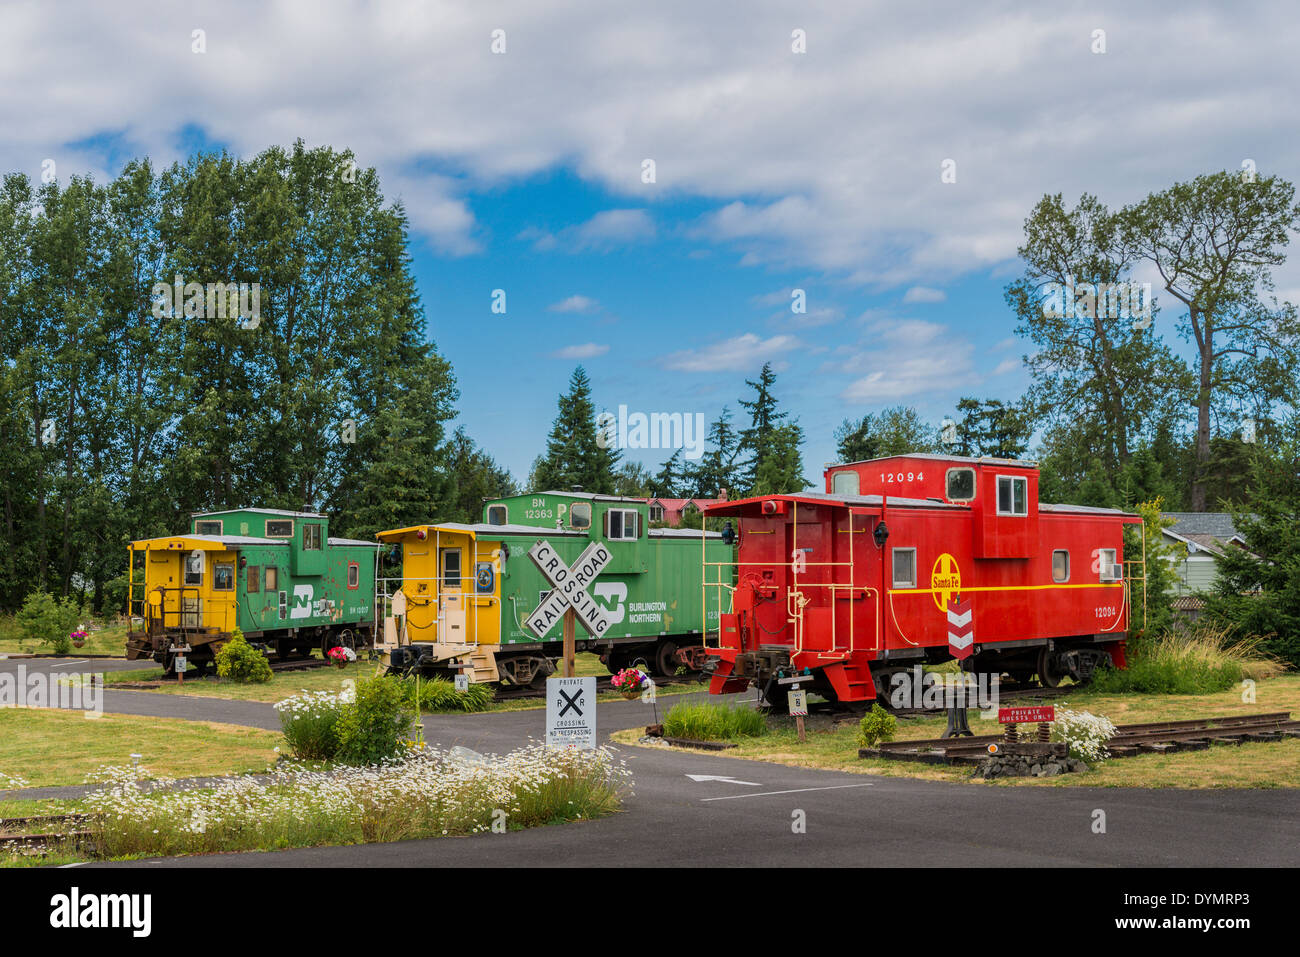 Cabooses Stock Photos & Cabooses Stock Images - Alamy